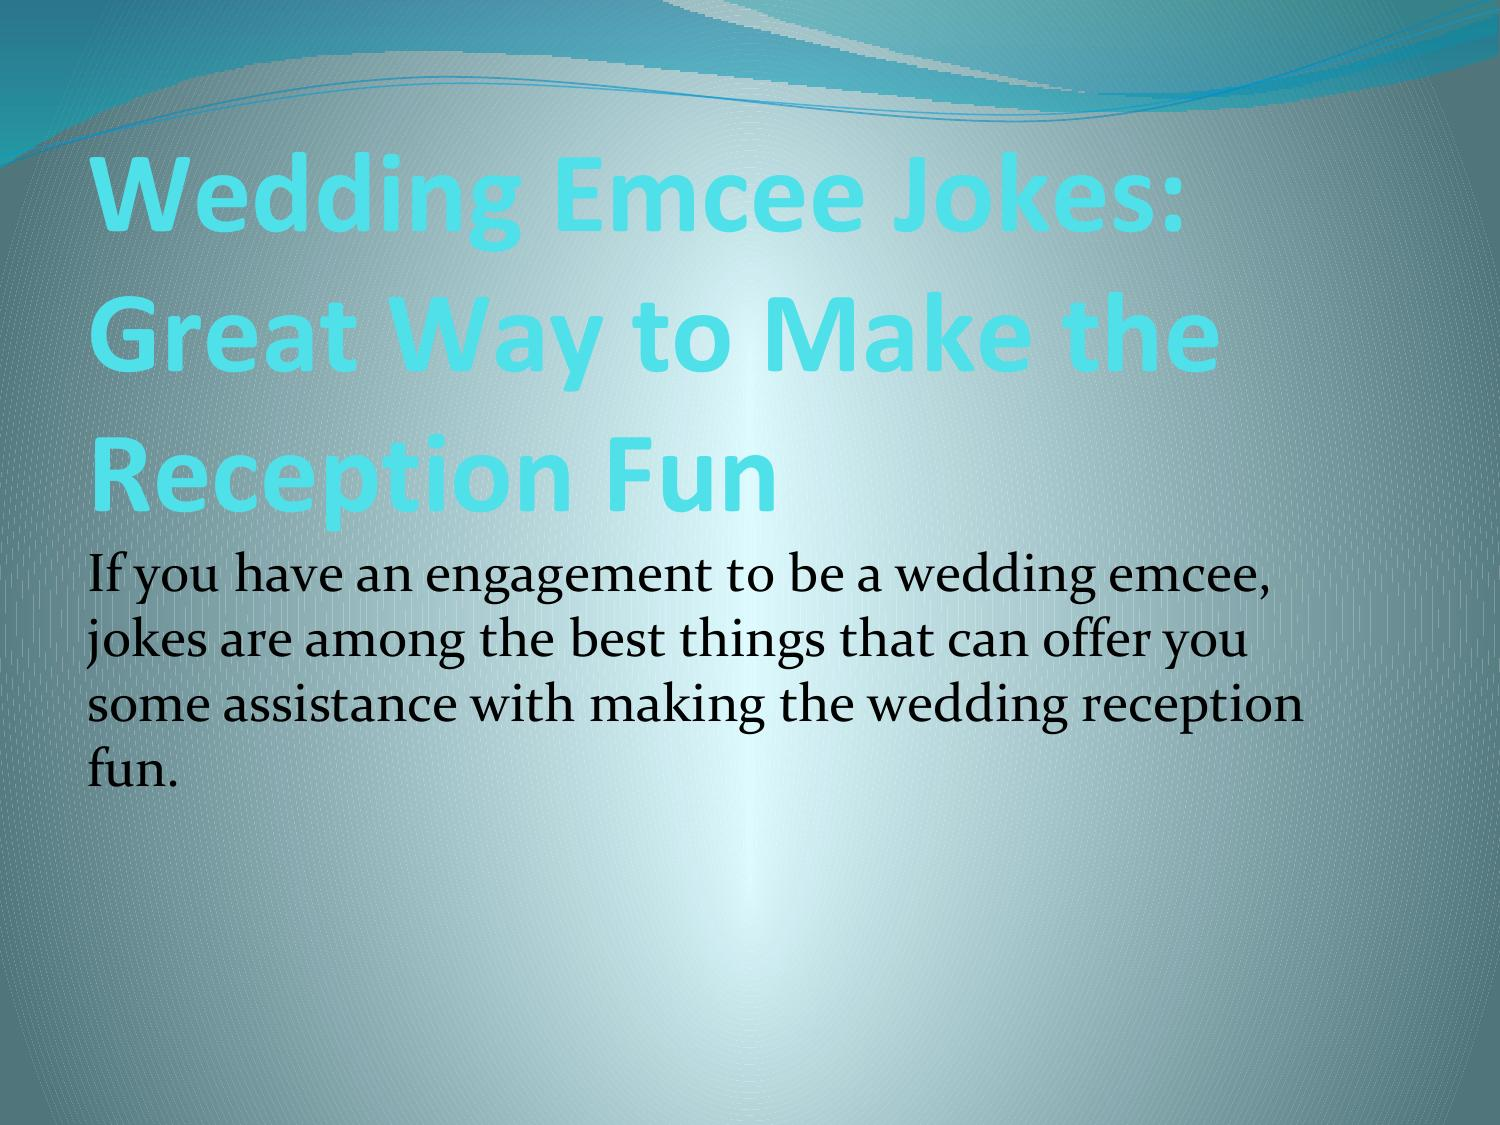 Wedding Emcee Jokes Great Way To Make The Reception Fun By